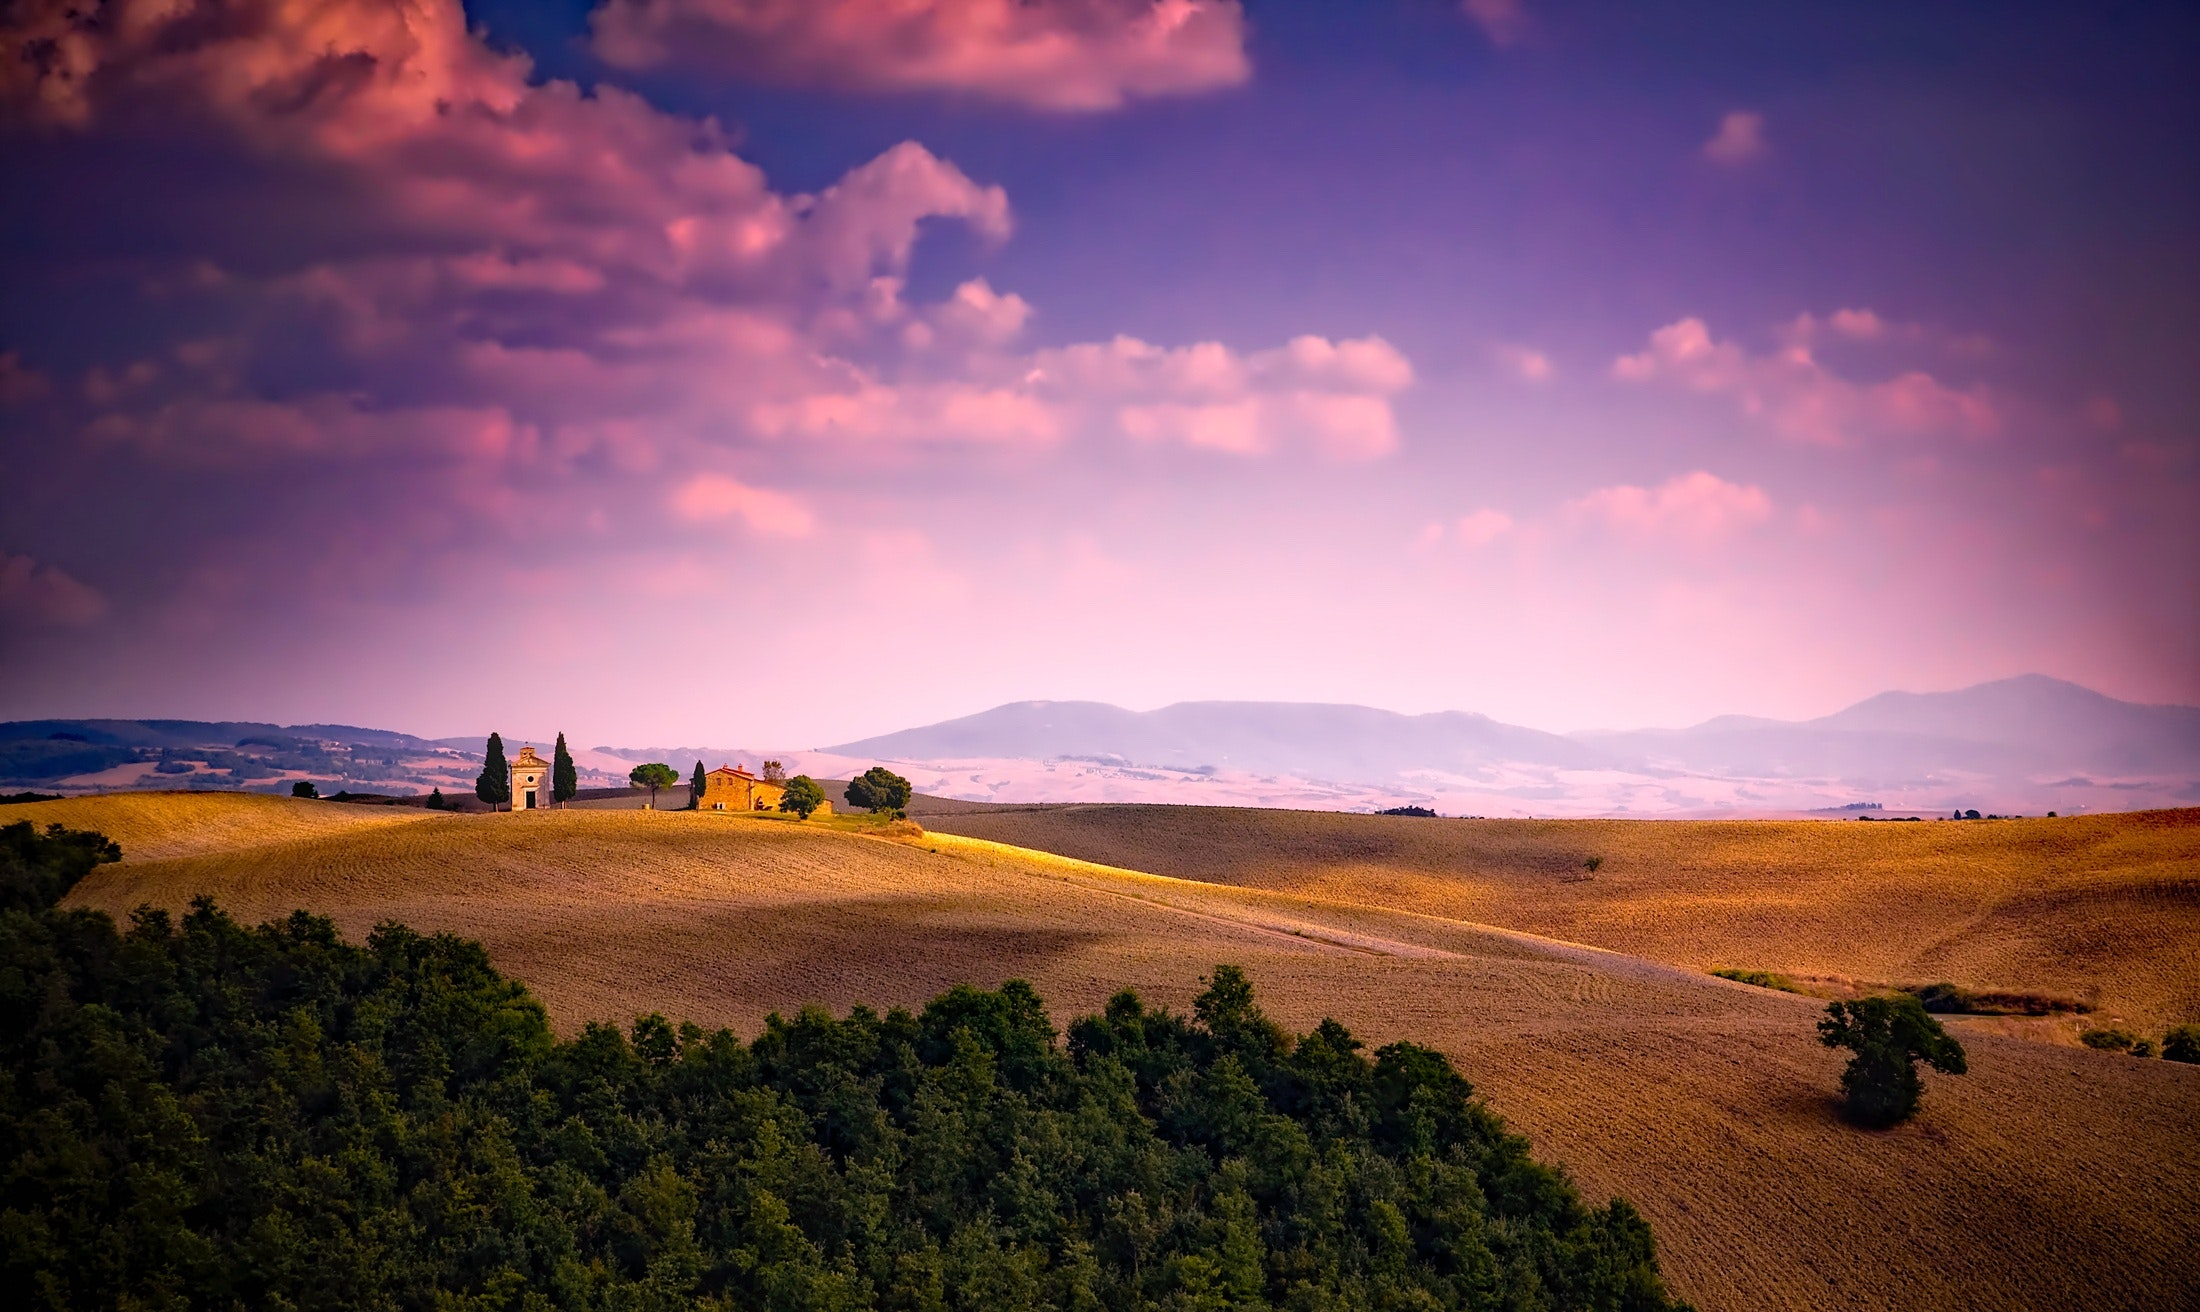 Scenic view of landscape against dramatic sky photo